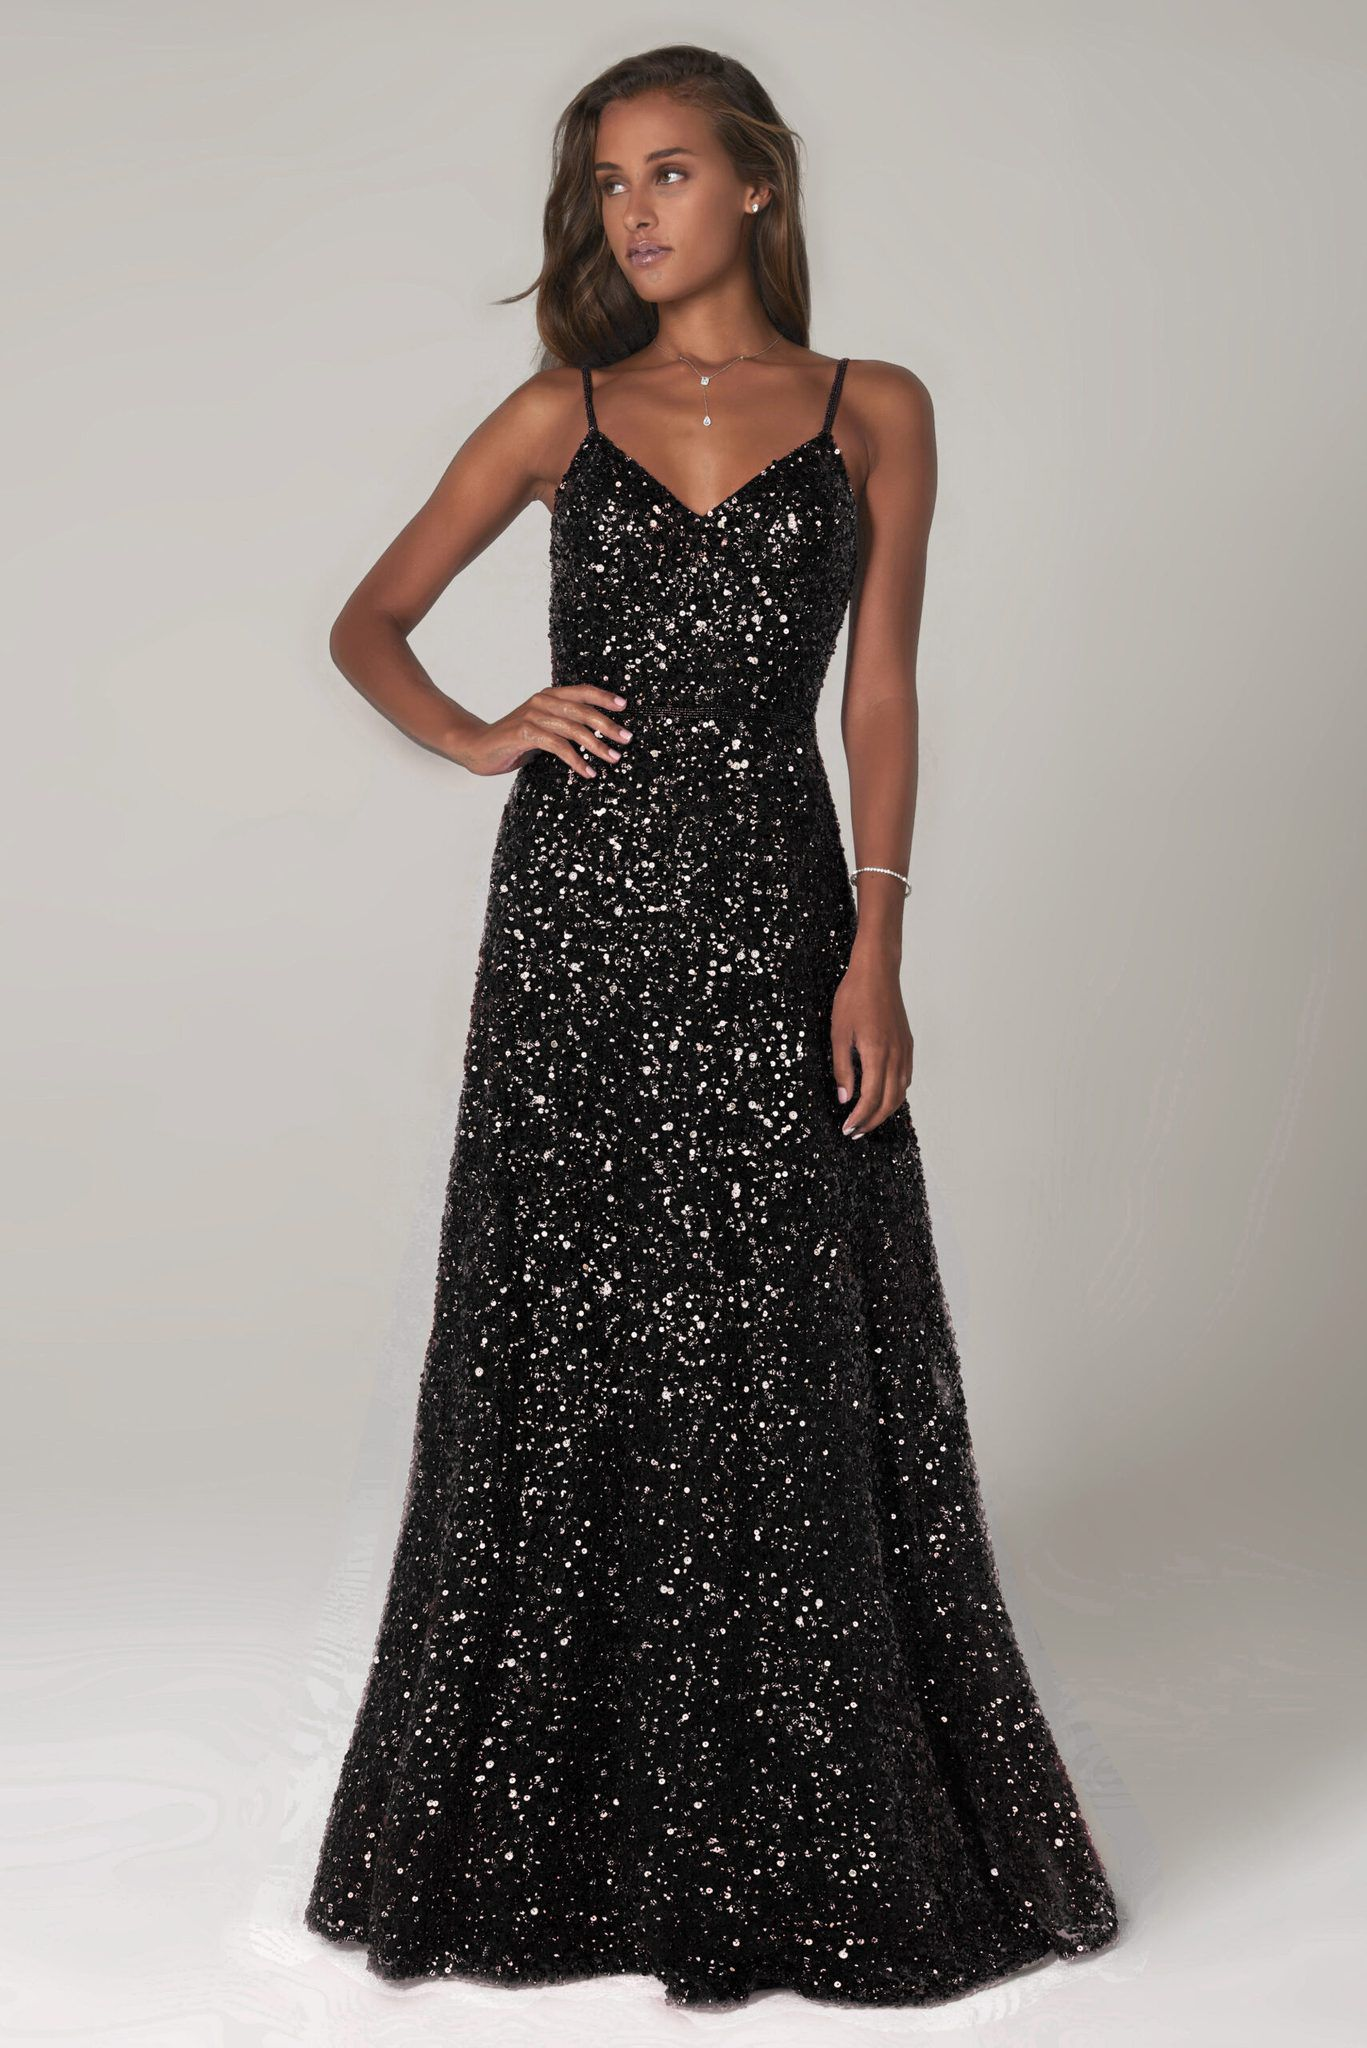 Style 60109 Scala Black Size 8 Spaghetti Strap Tall Height A-line Dress on Queenly